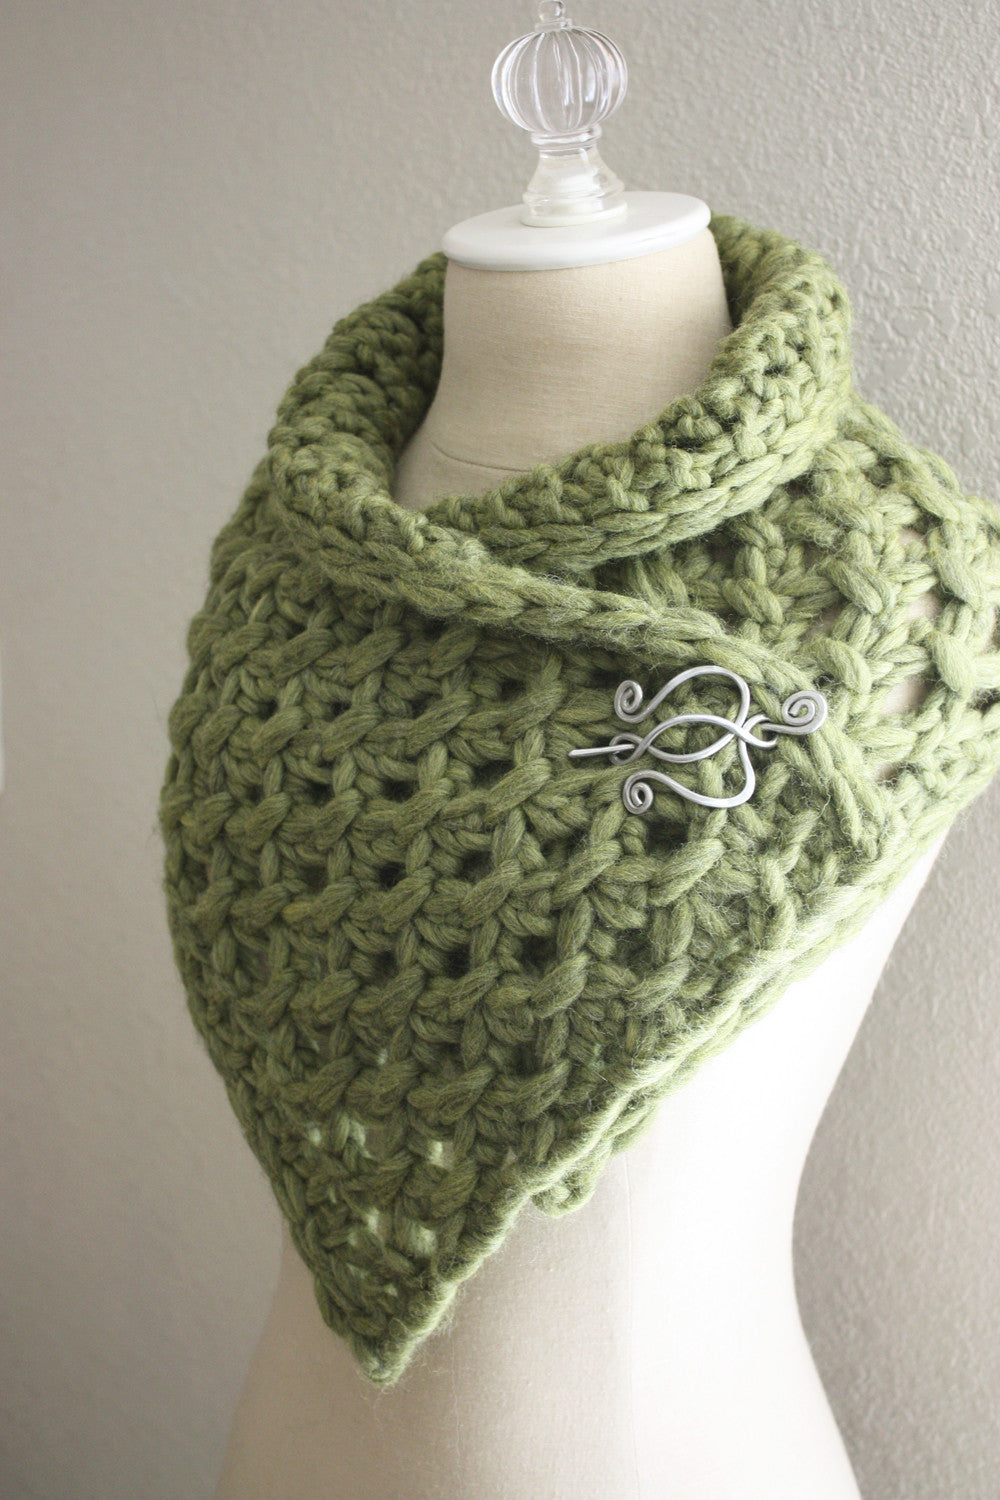 Lattice Cowl / Scarf Knitting Pattern – Phydeaux Designs & Fiber